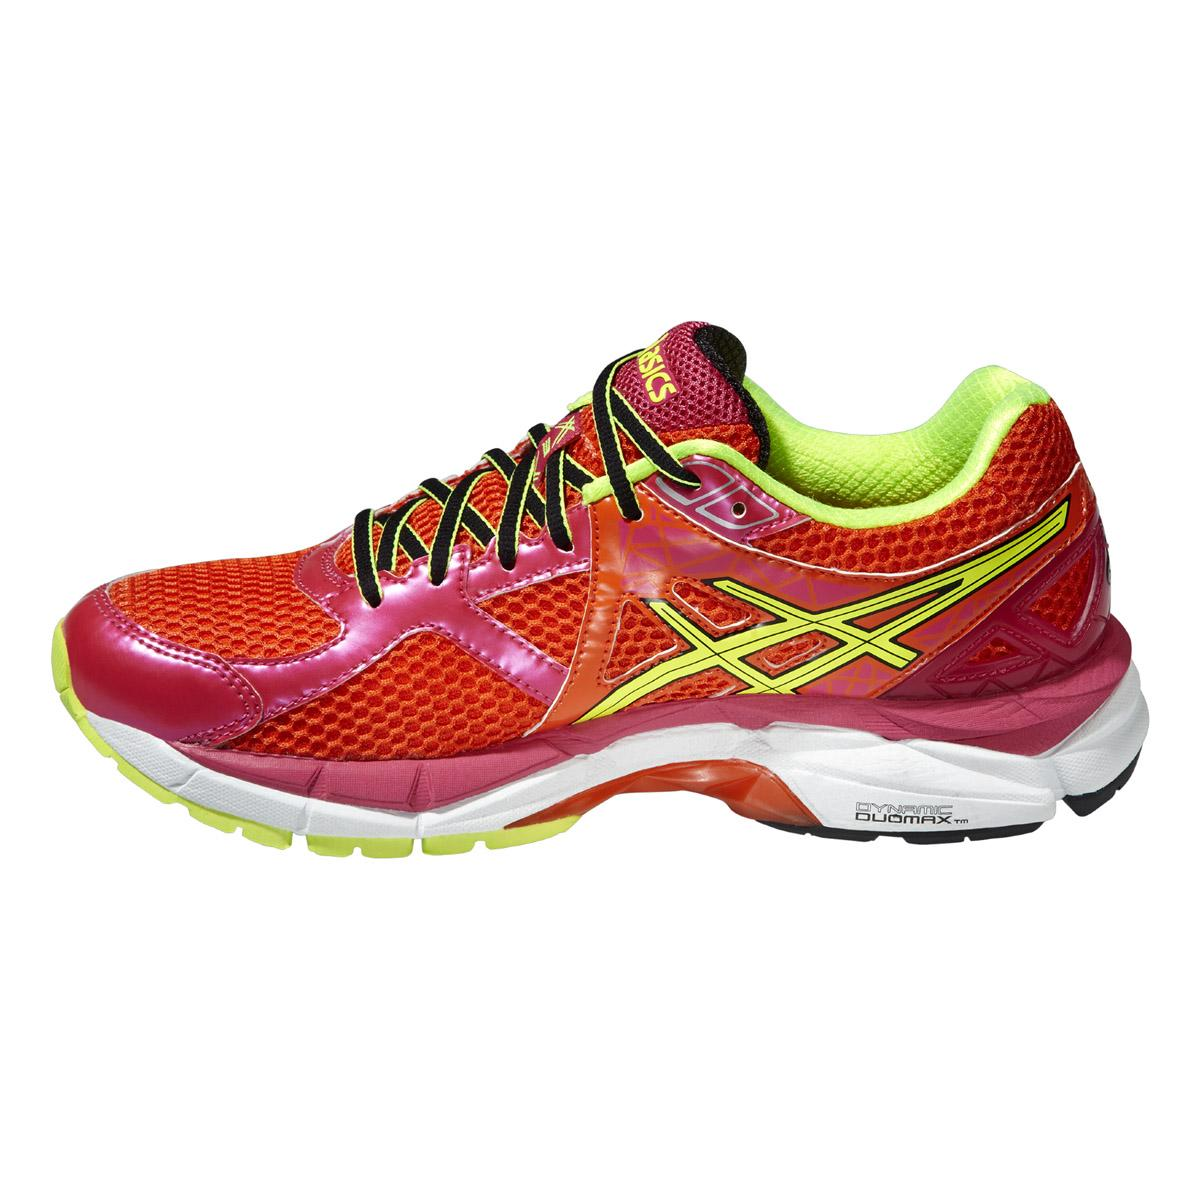 Asics Womens GT-2000 3 Running Shoes - Red/Yellow/Pink